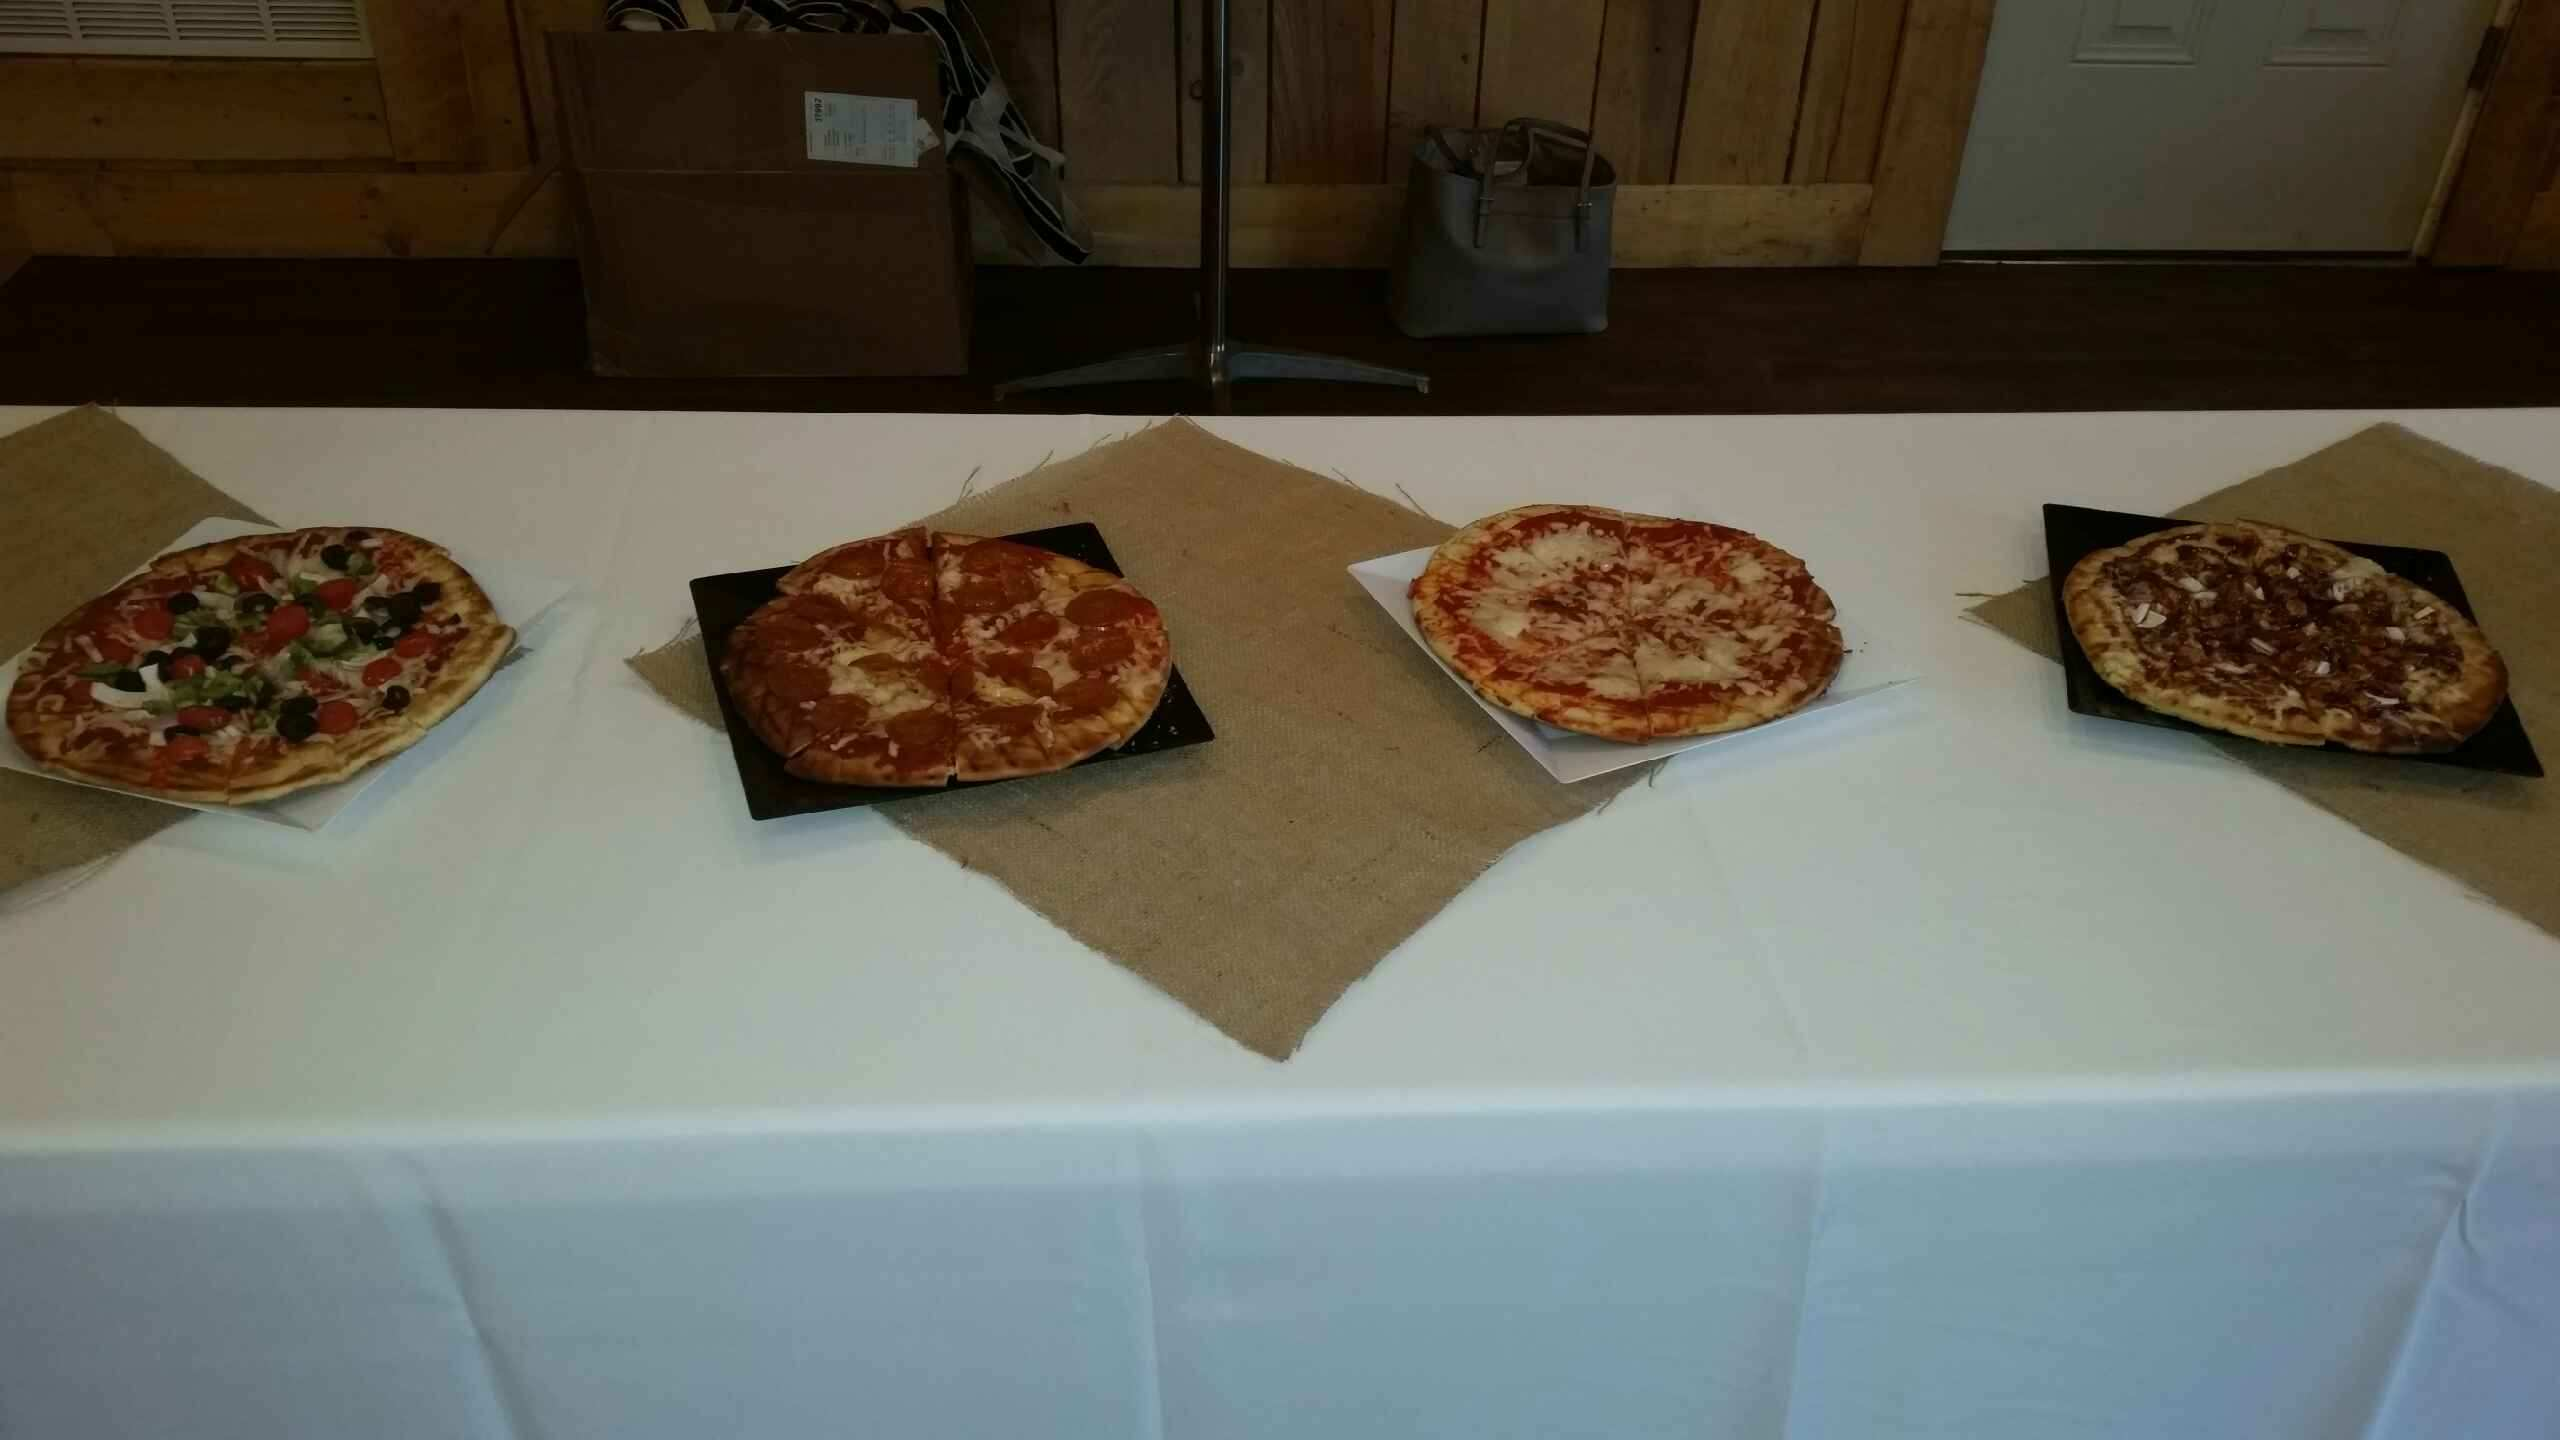 Rehearsal Dinner Pizza Setup